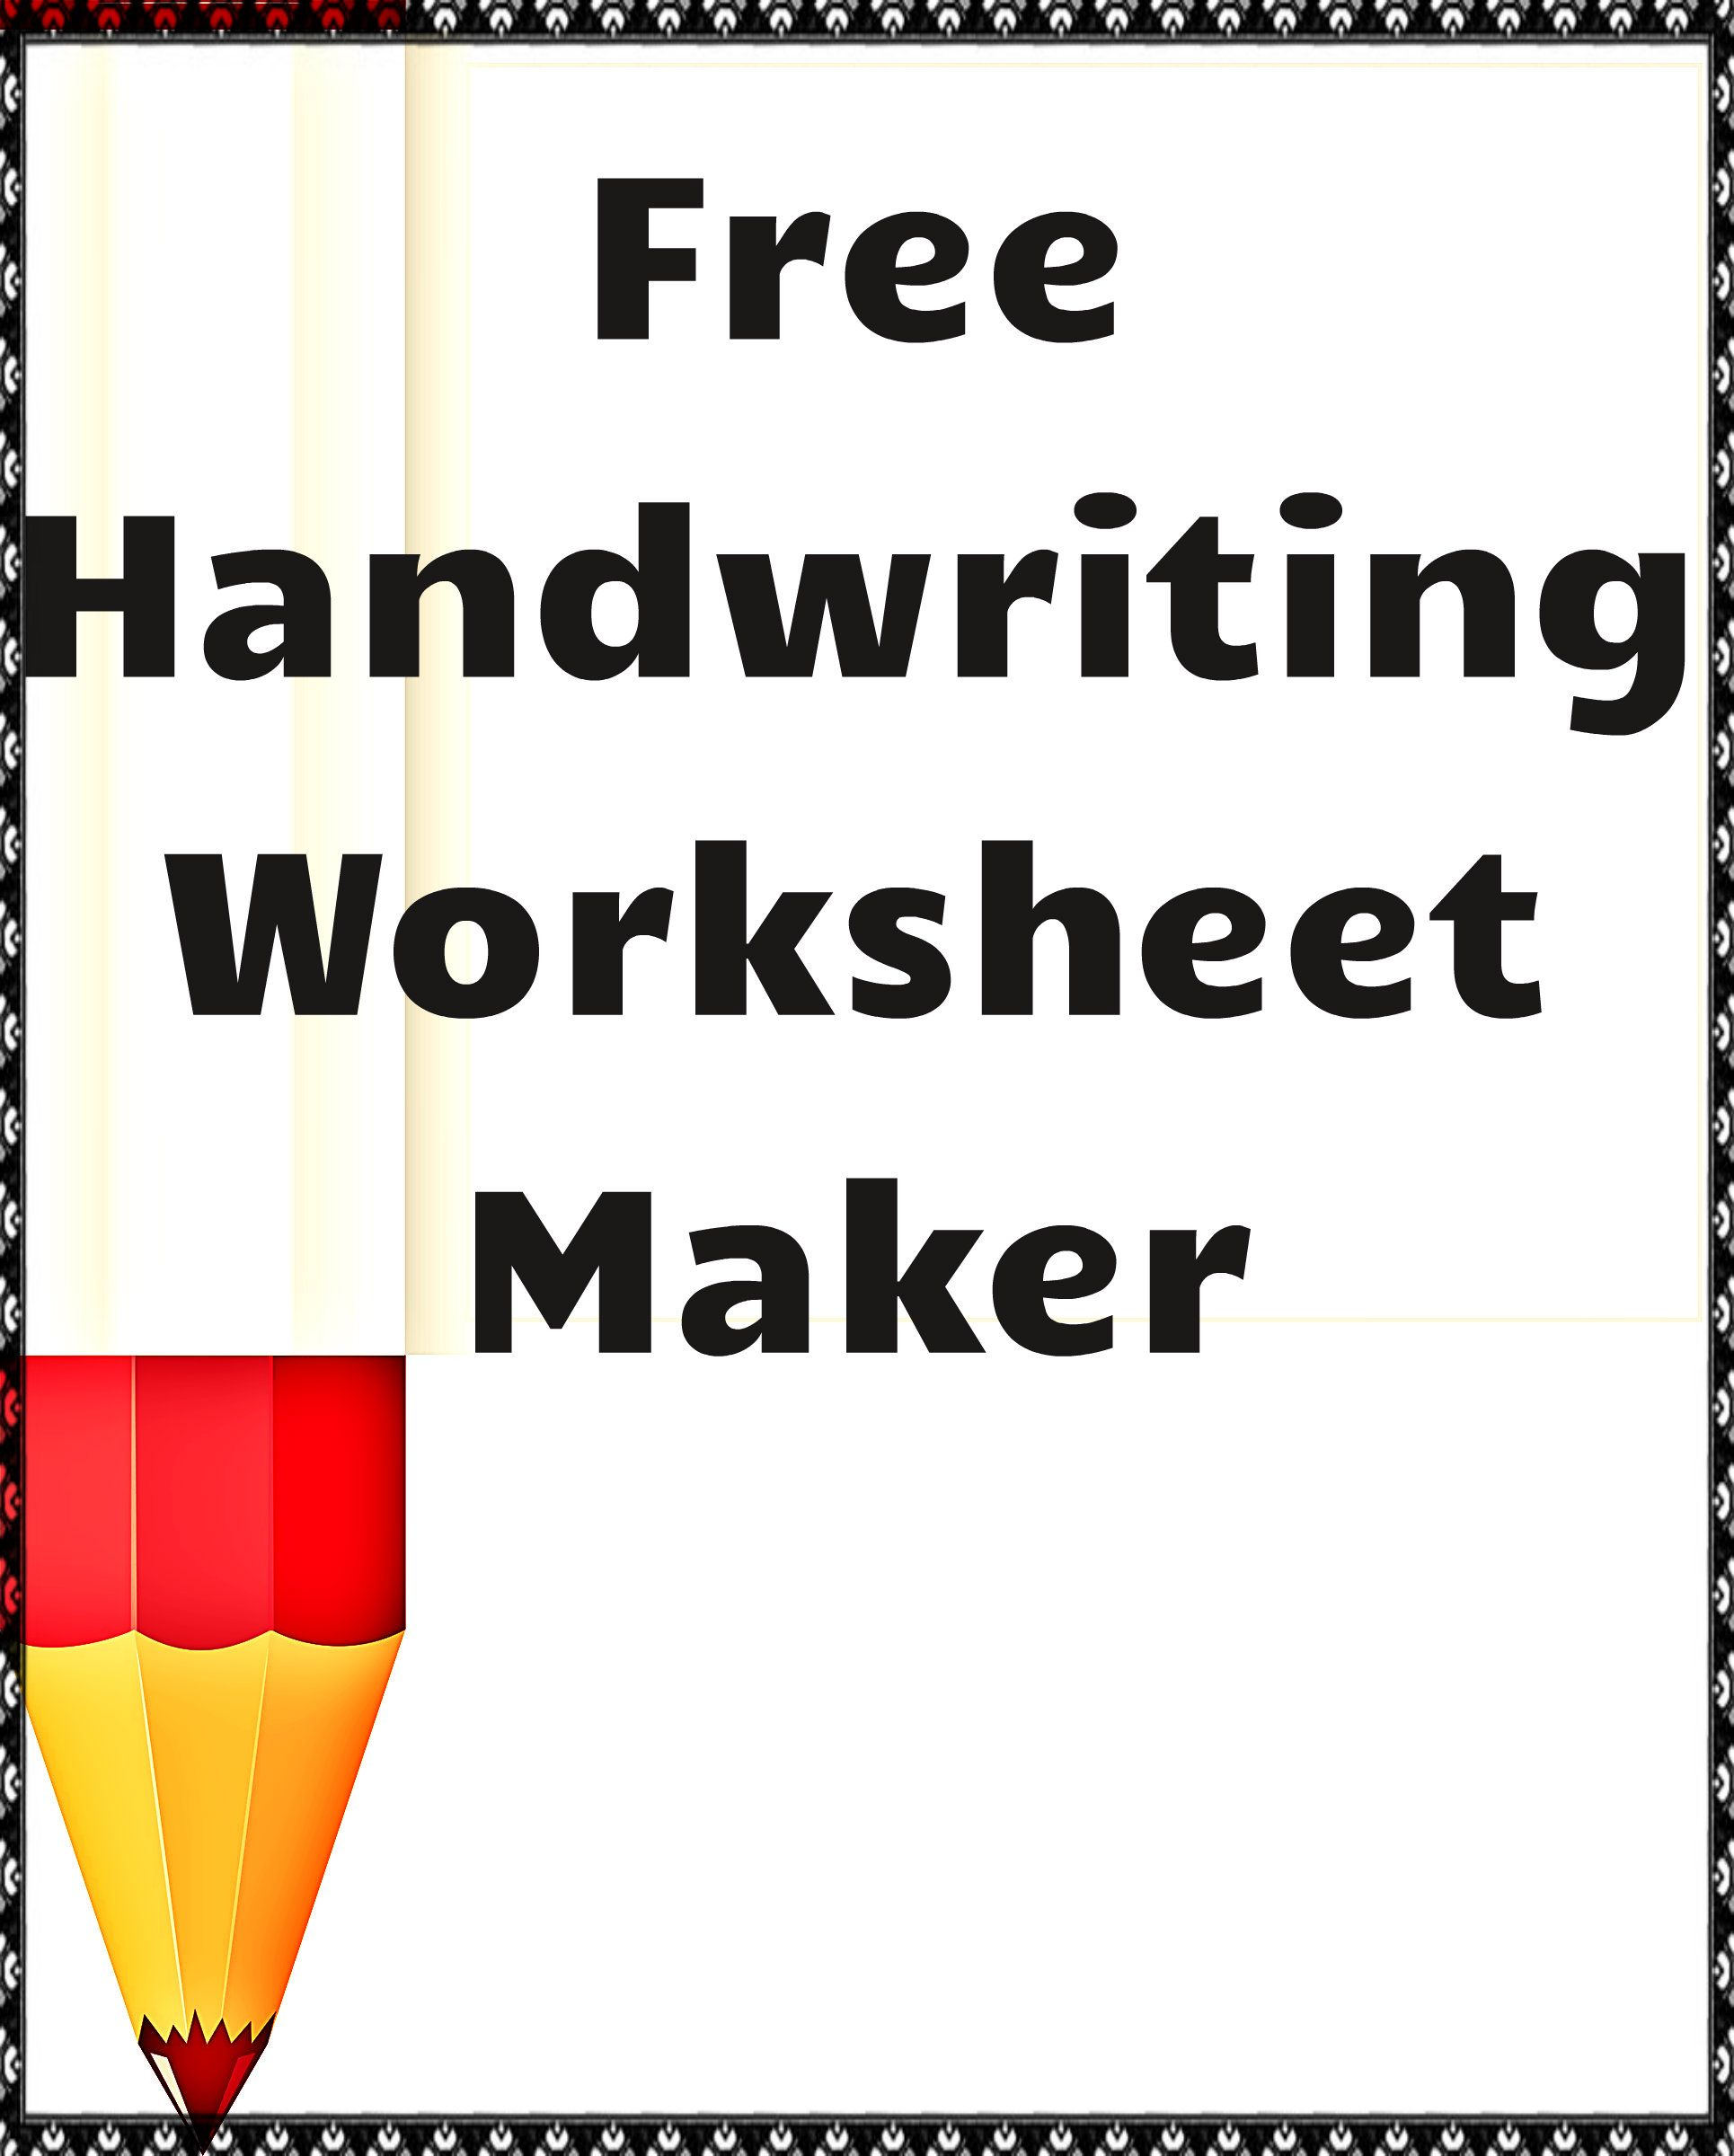 Worksheets Create Handwriting Worksheets free handwriting worksheet maker kindergartenklub com pinterest maker